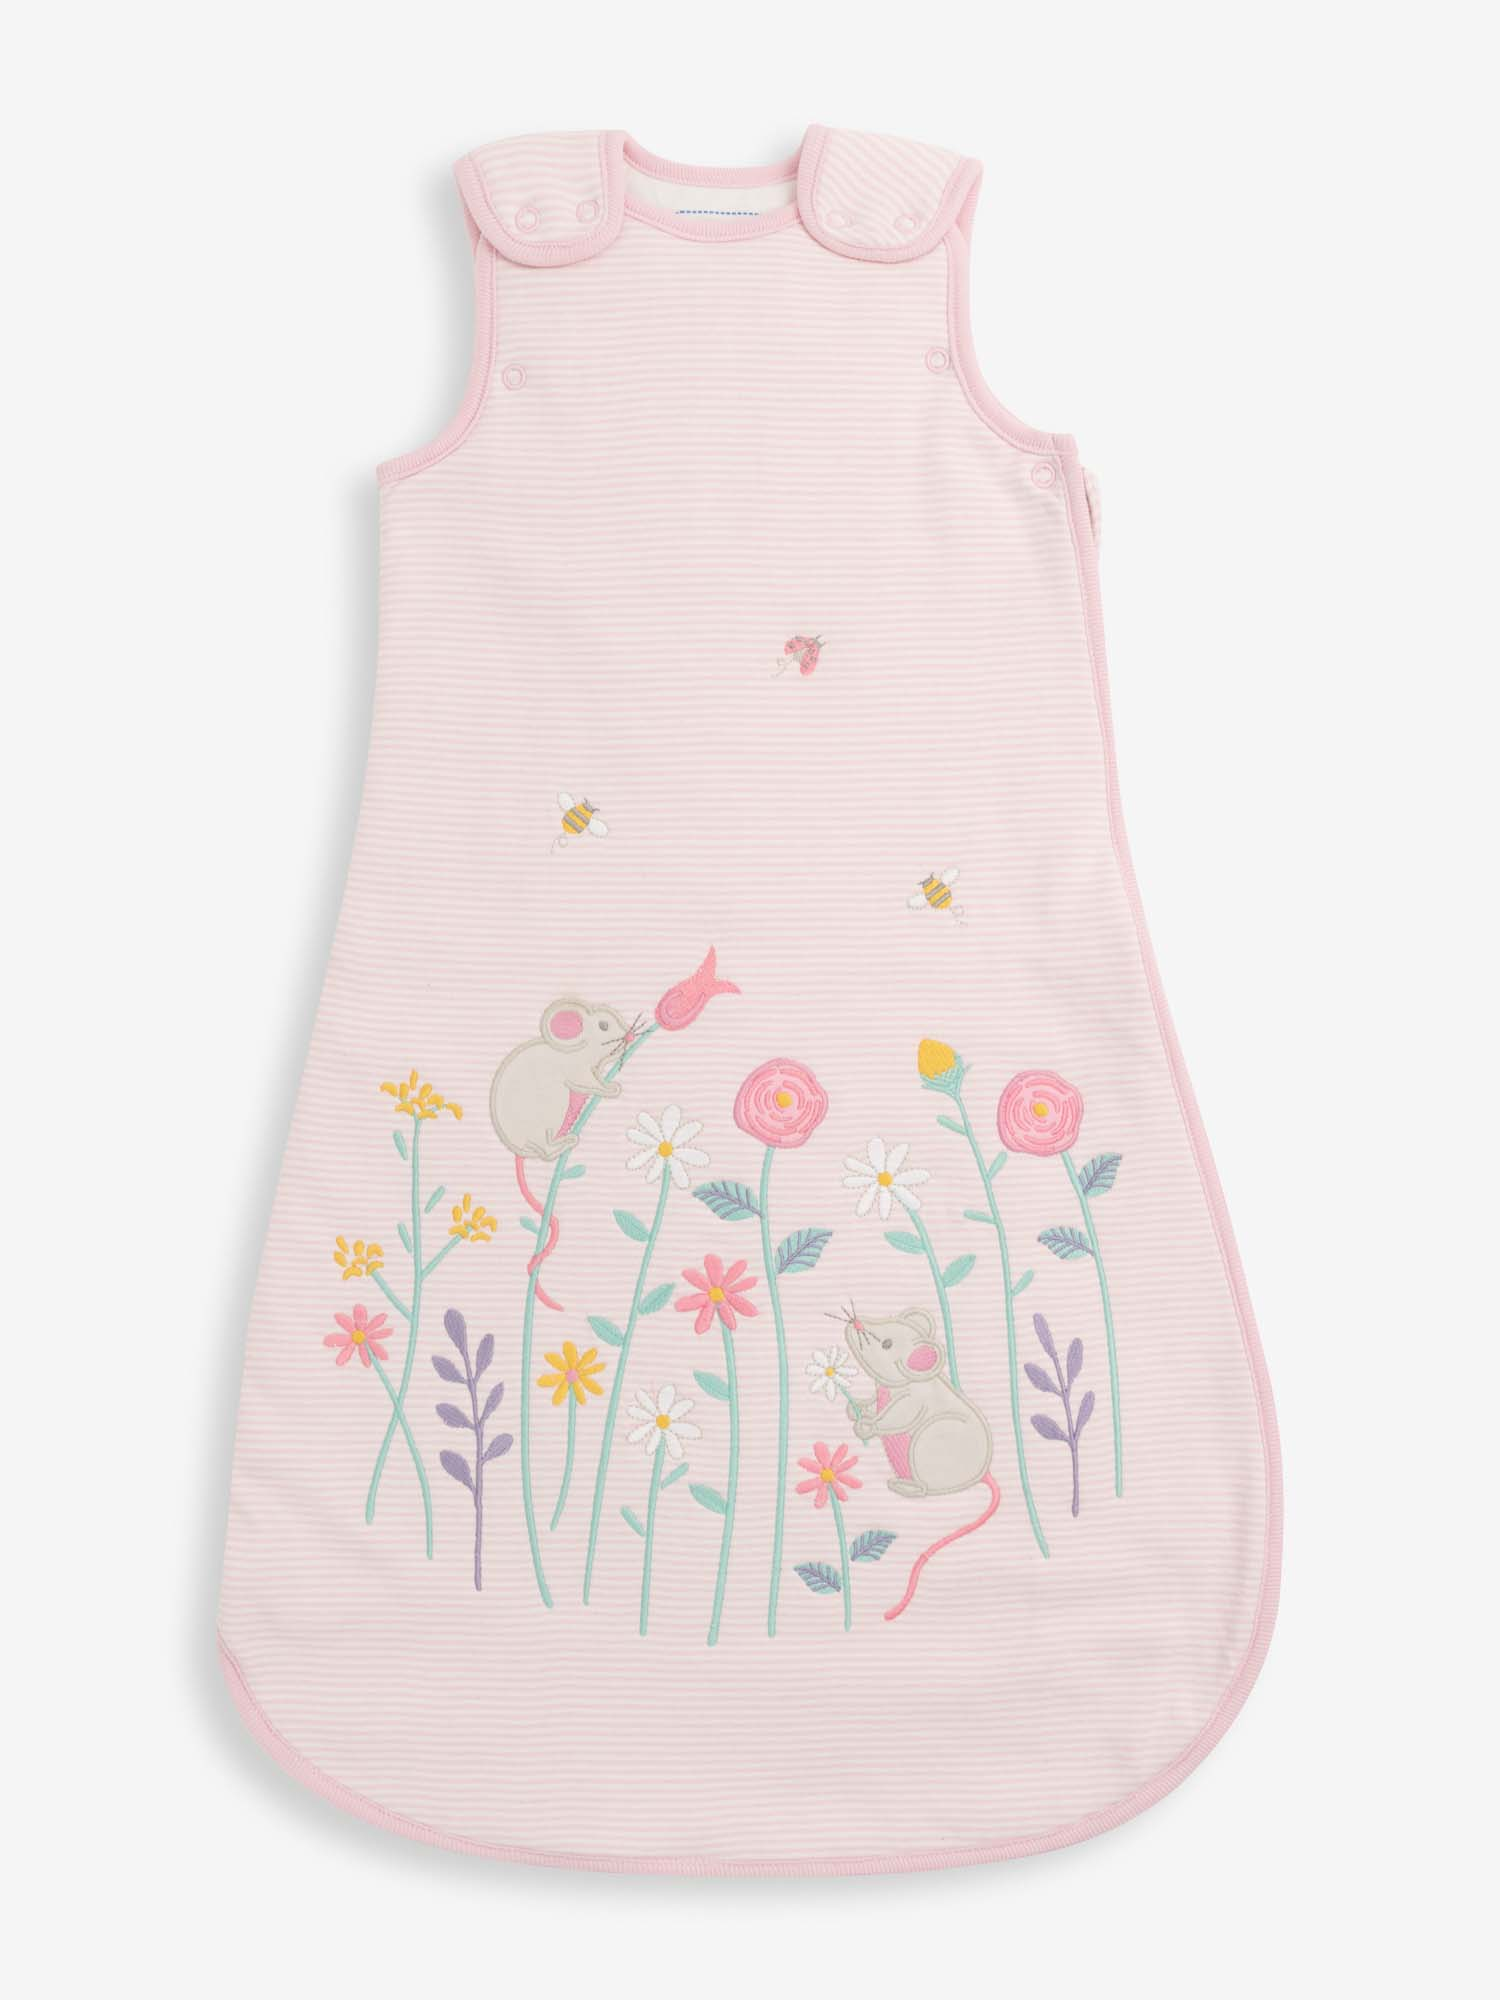 Baby Products Mouse Appliqué 1.5 Tog Baby Sleeping Bag